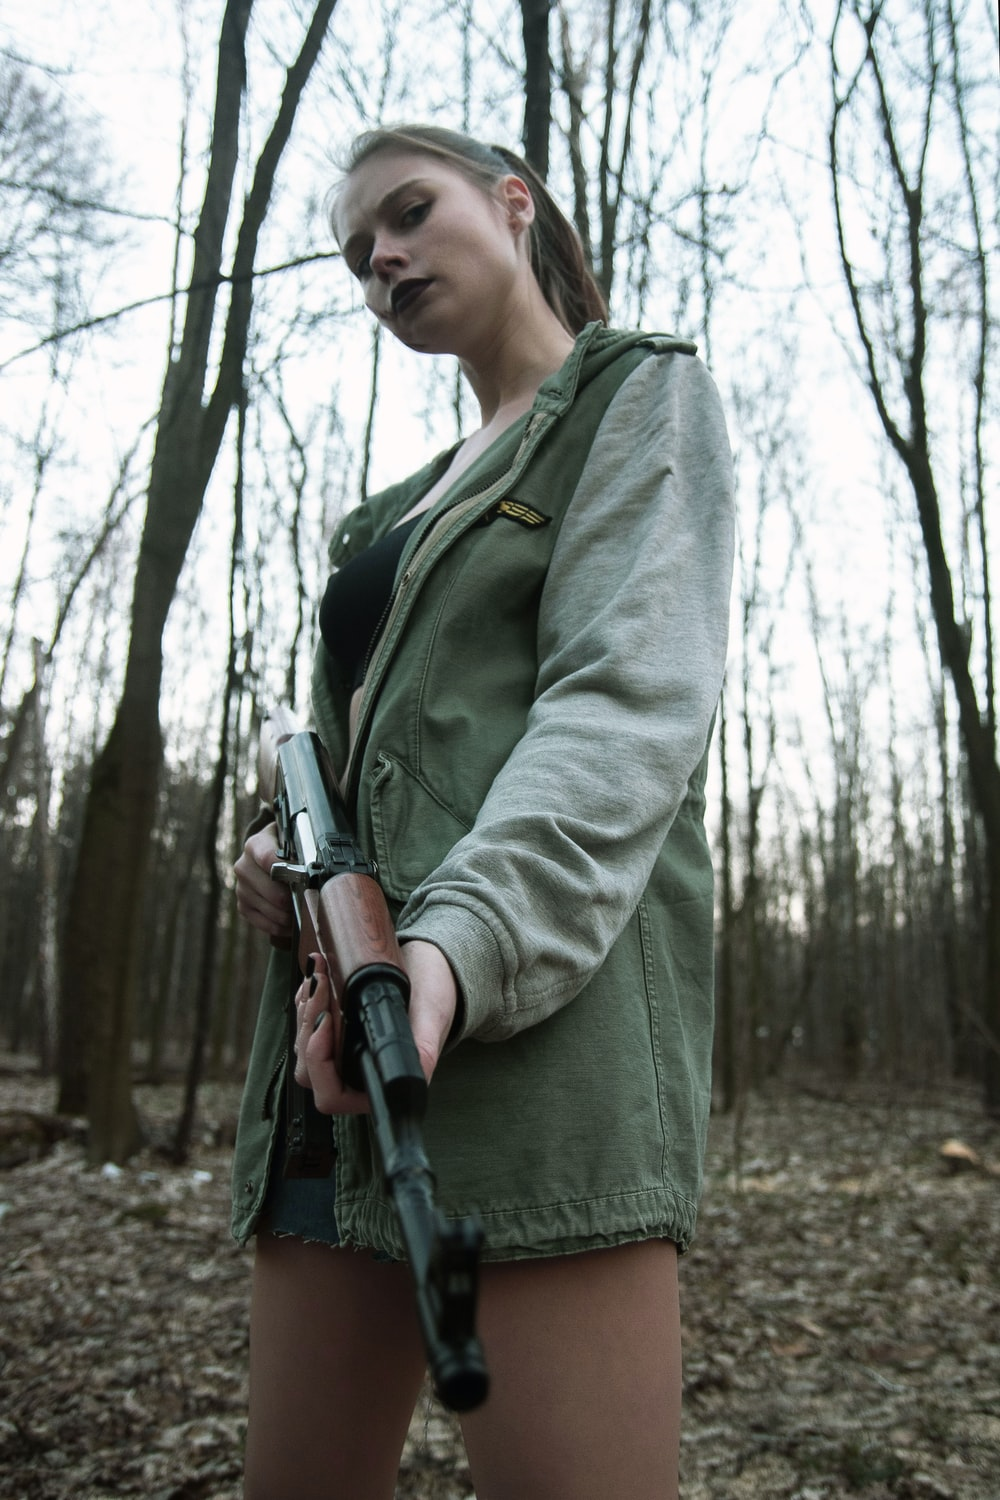 woman in green coat holding black rifle